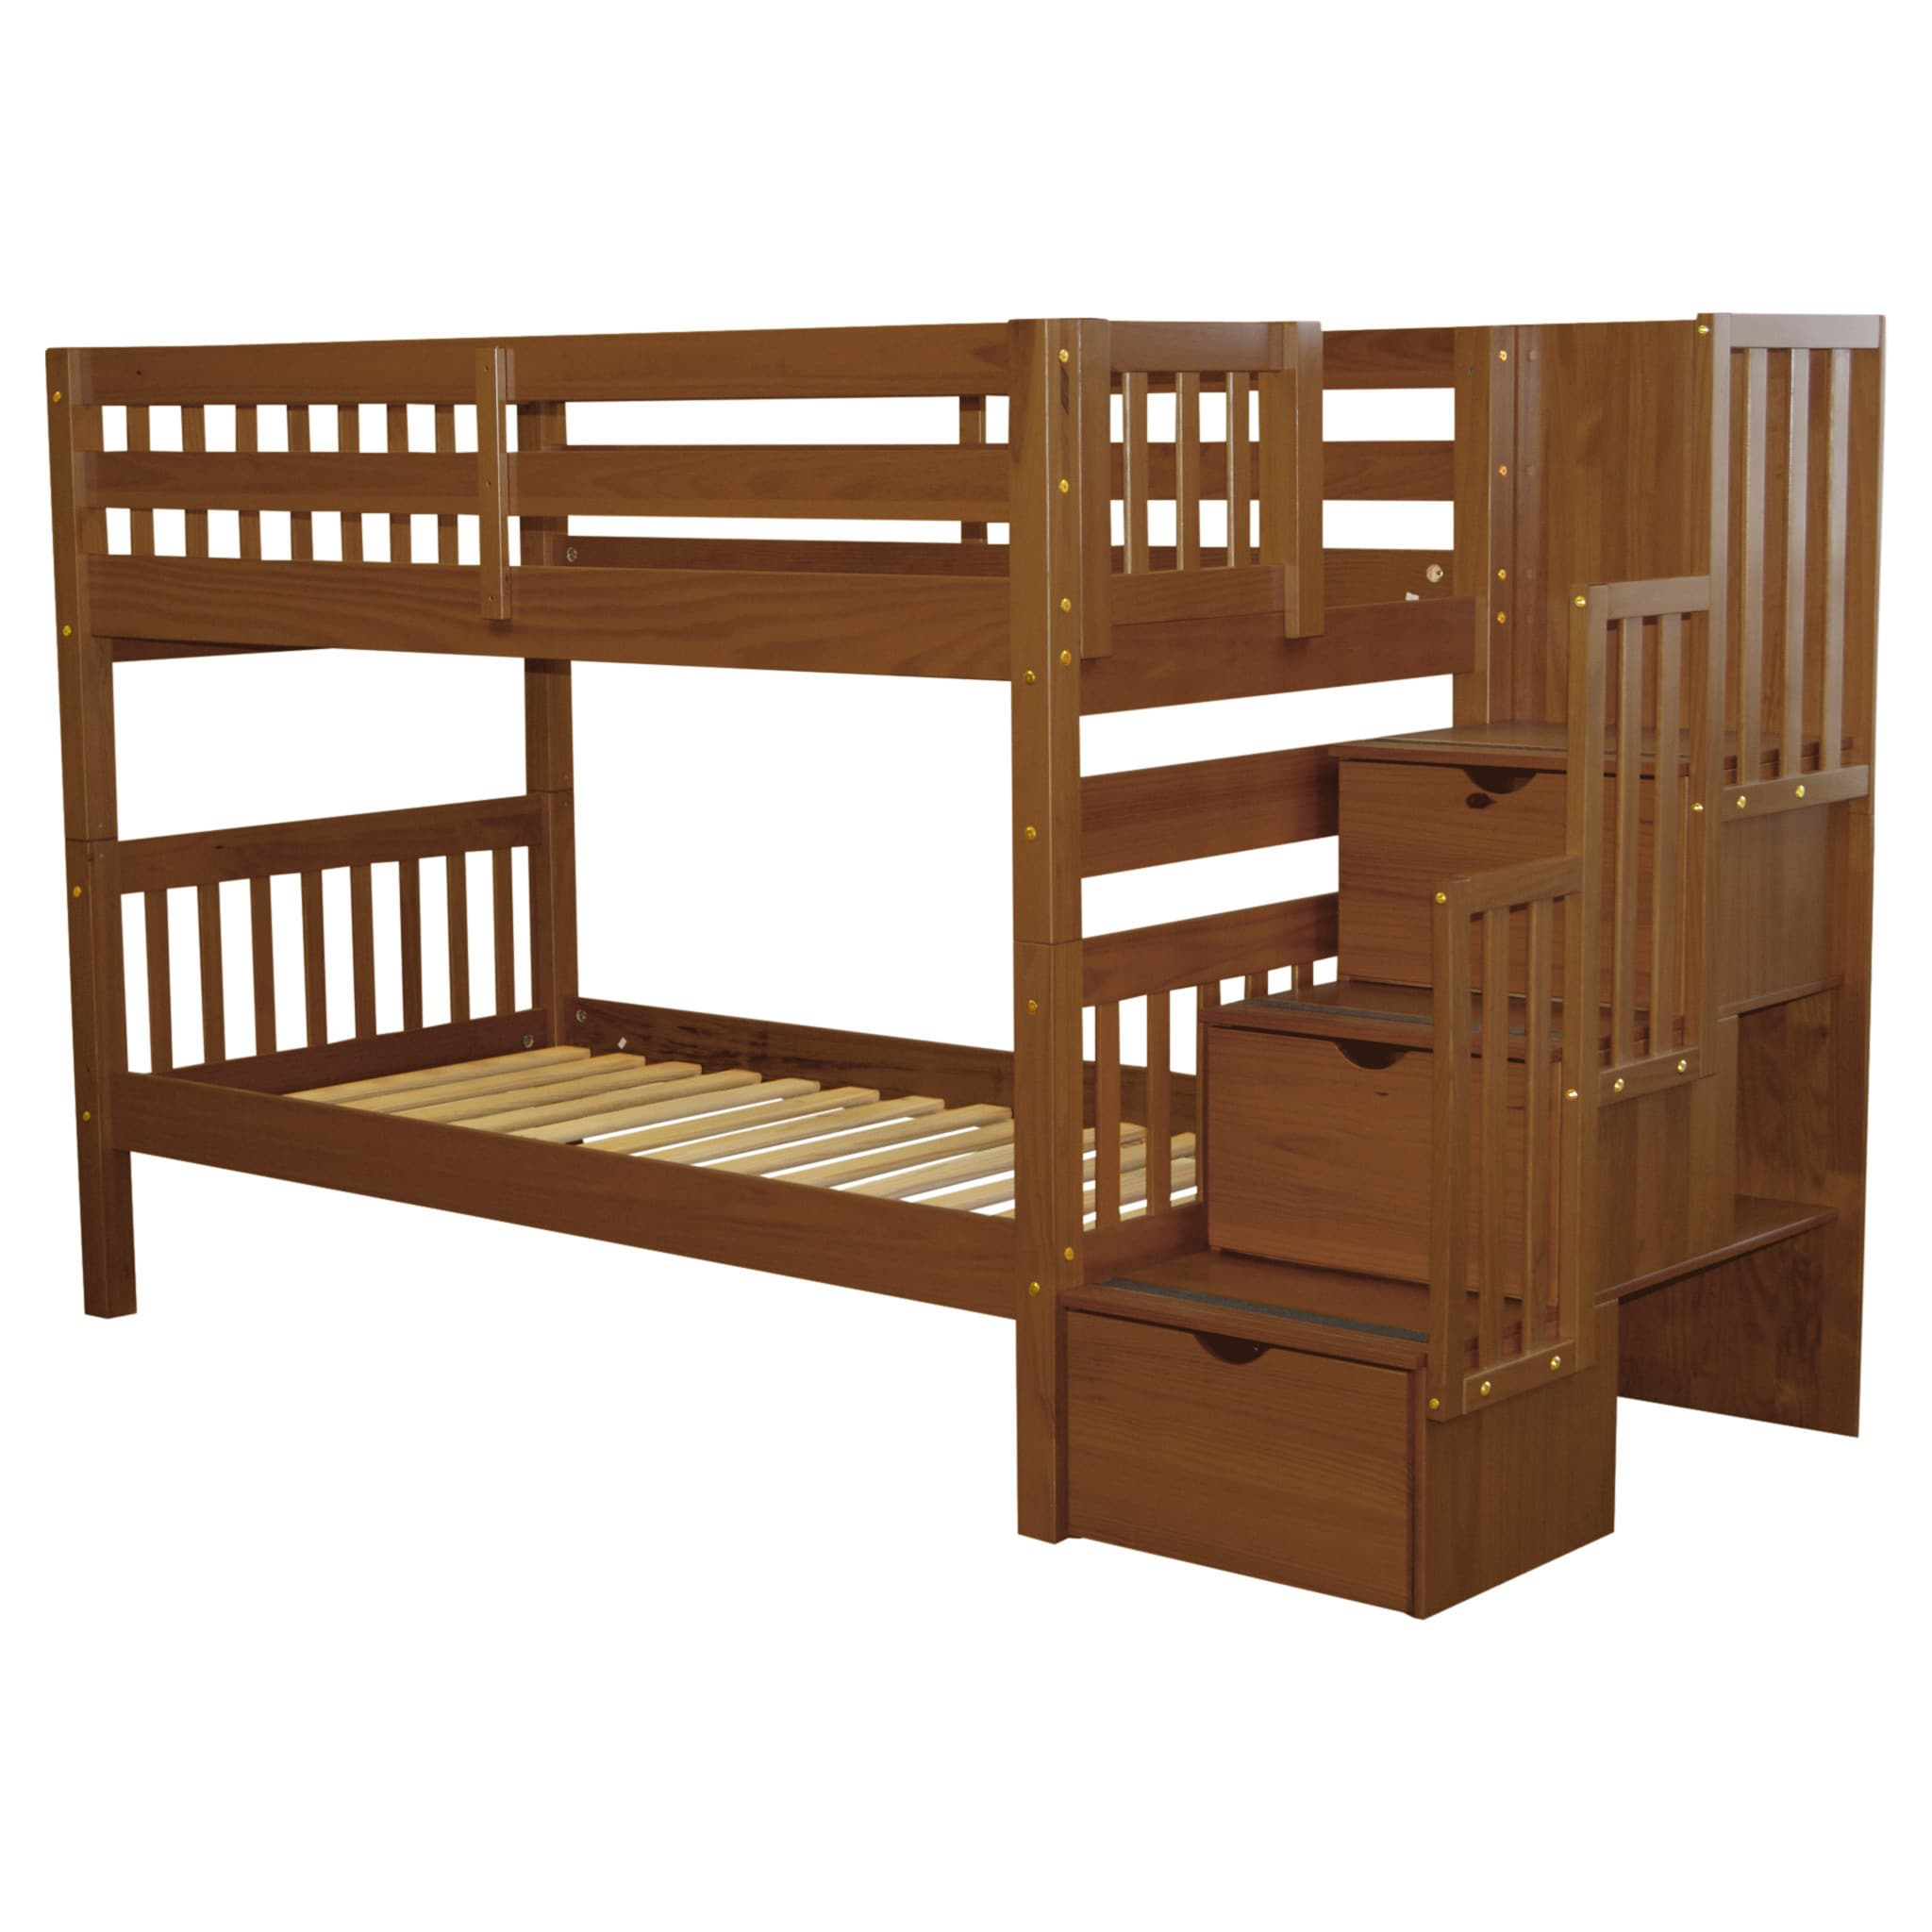 Bedz King Stairway Bunk Bed Twin Over Twin With 3